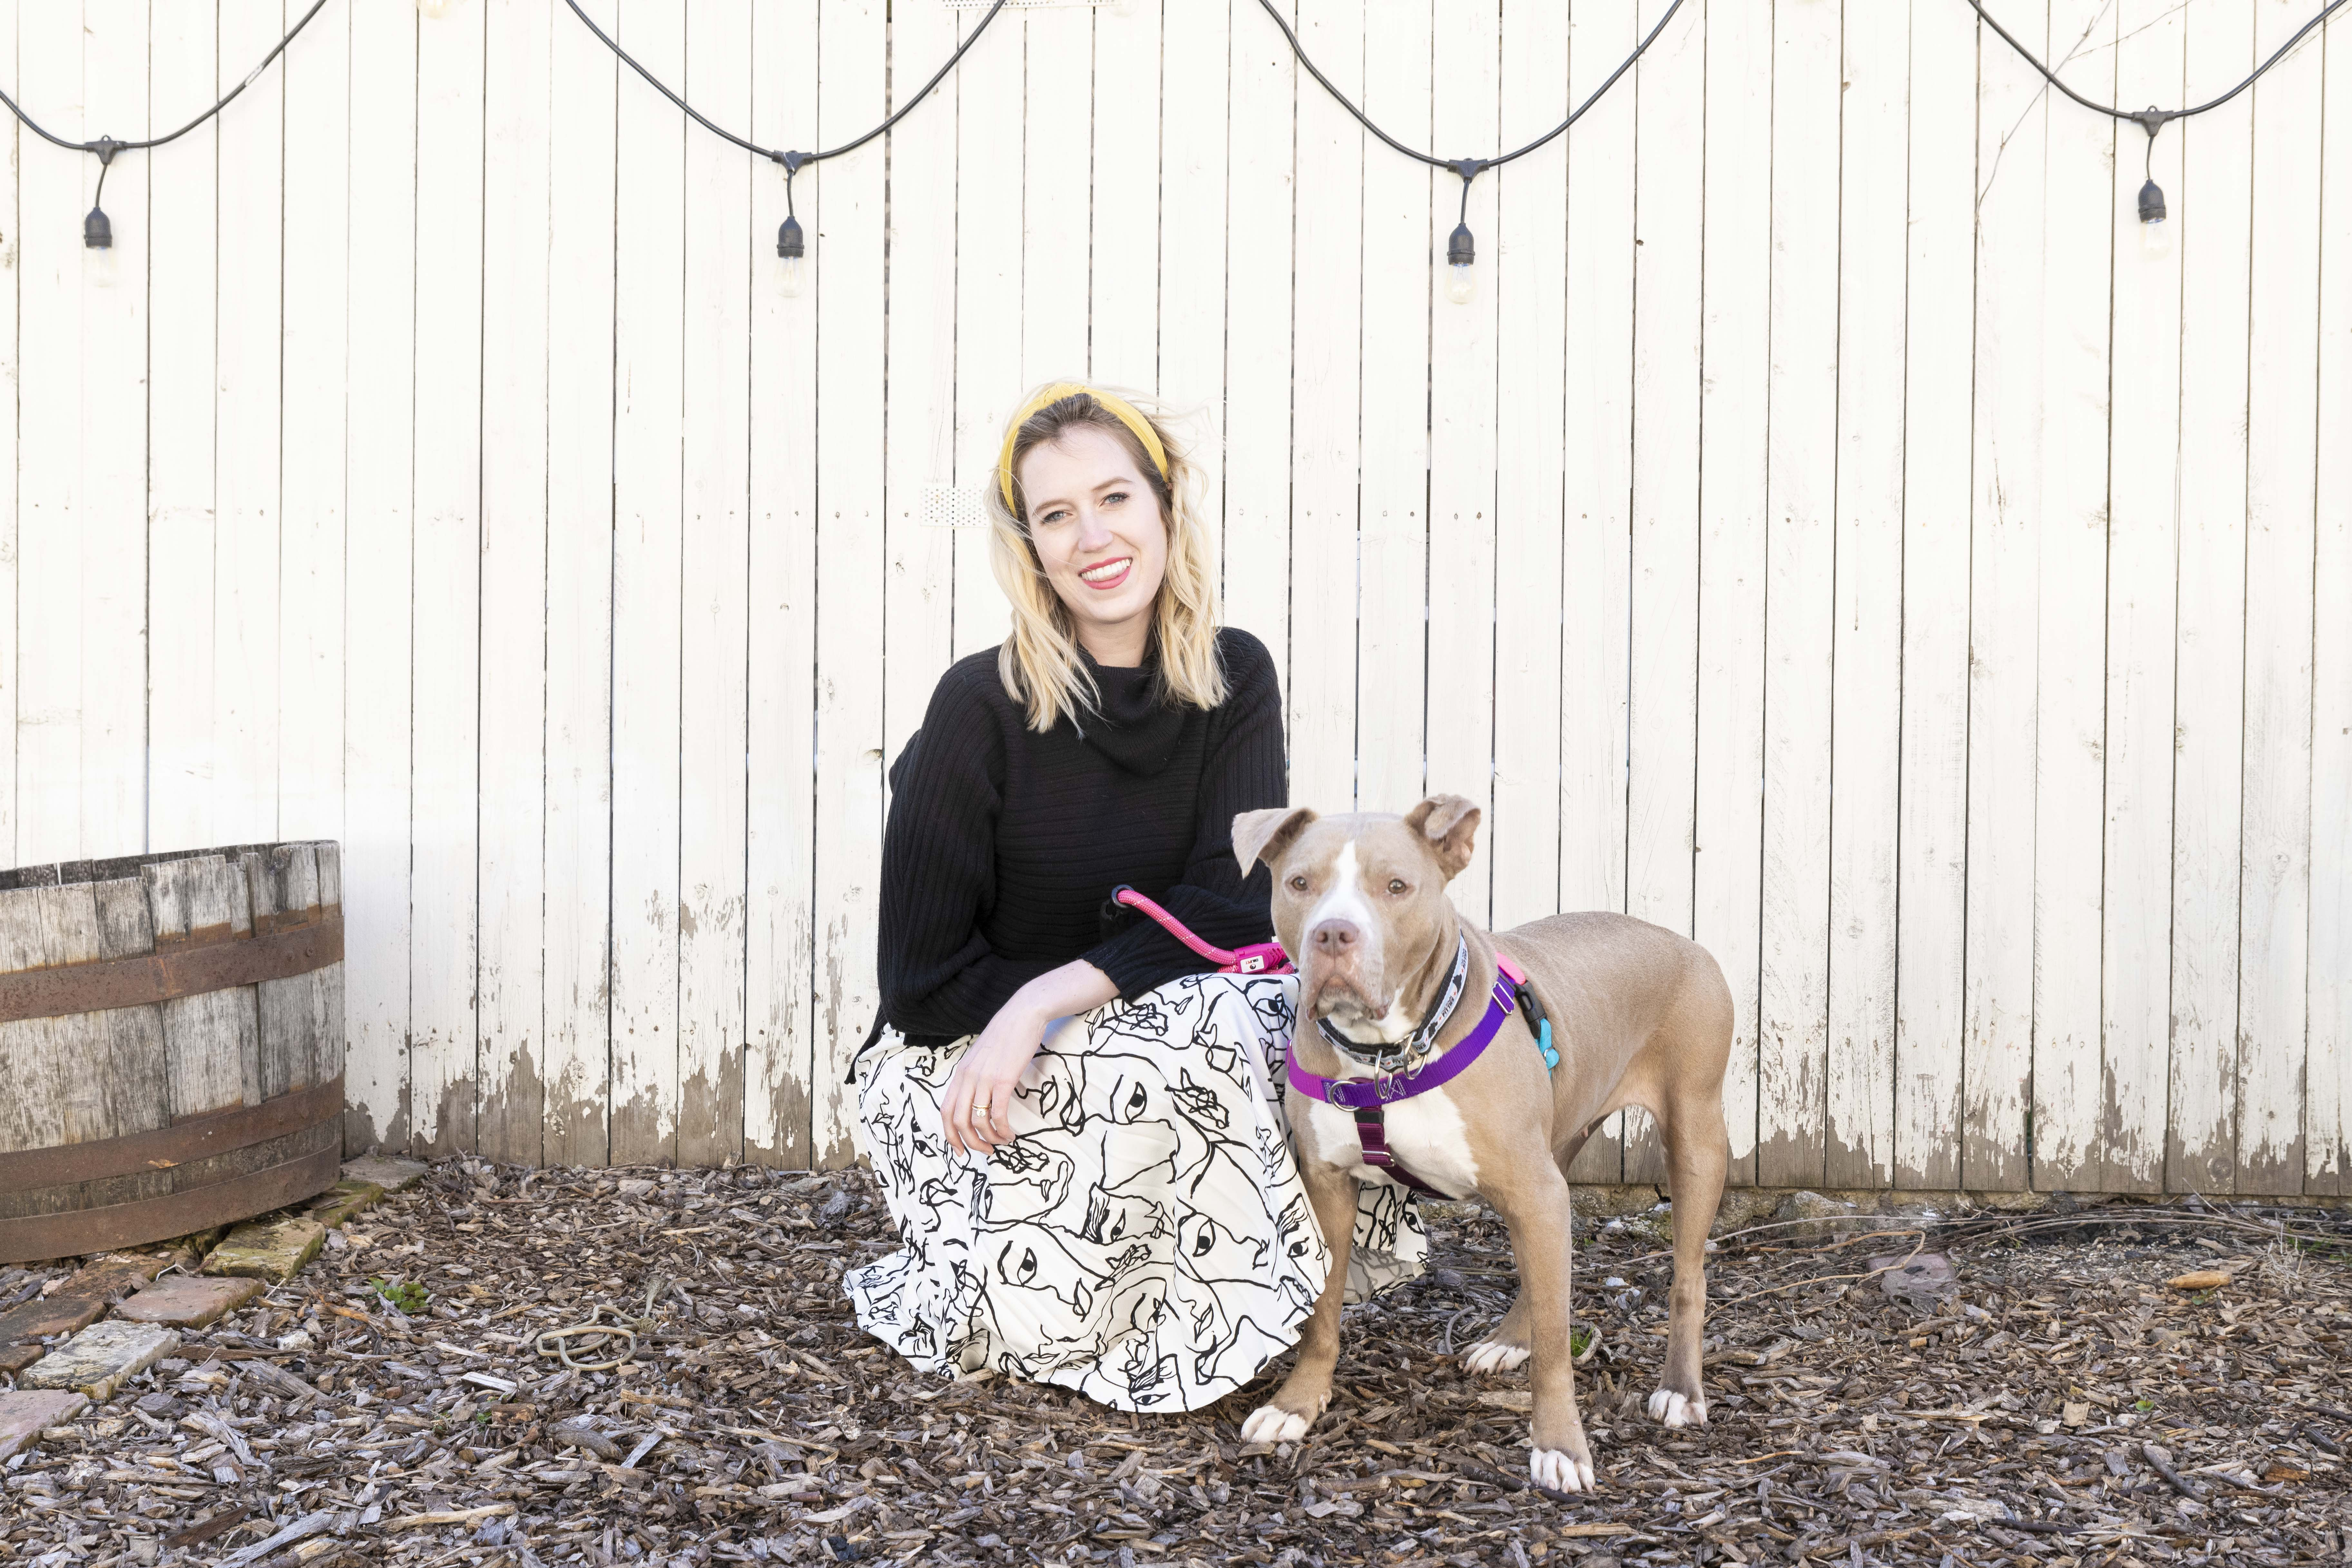 Chi Town Pitties helping our city dogs with intention